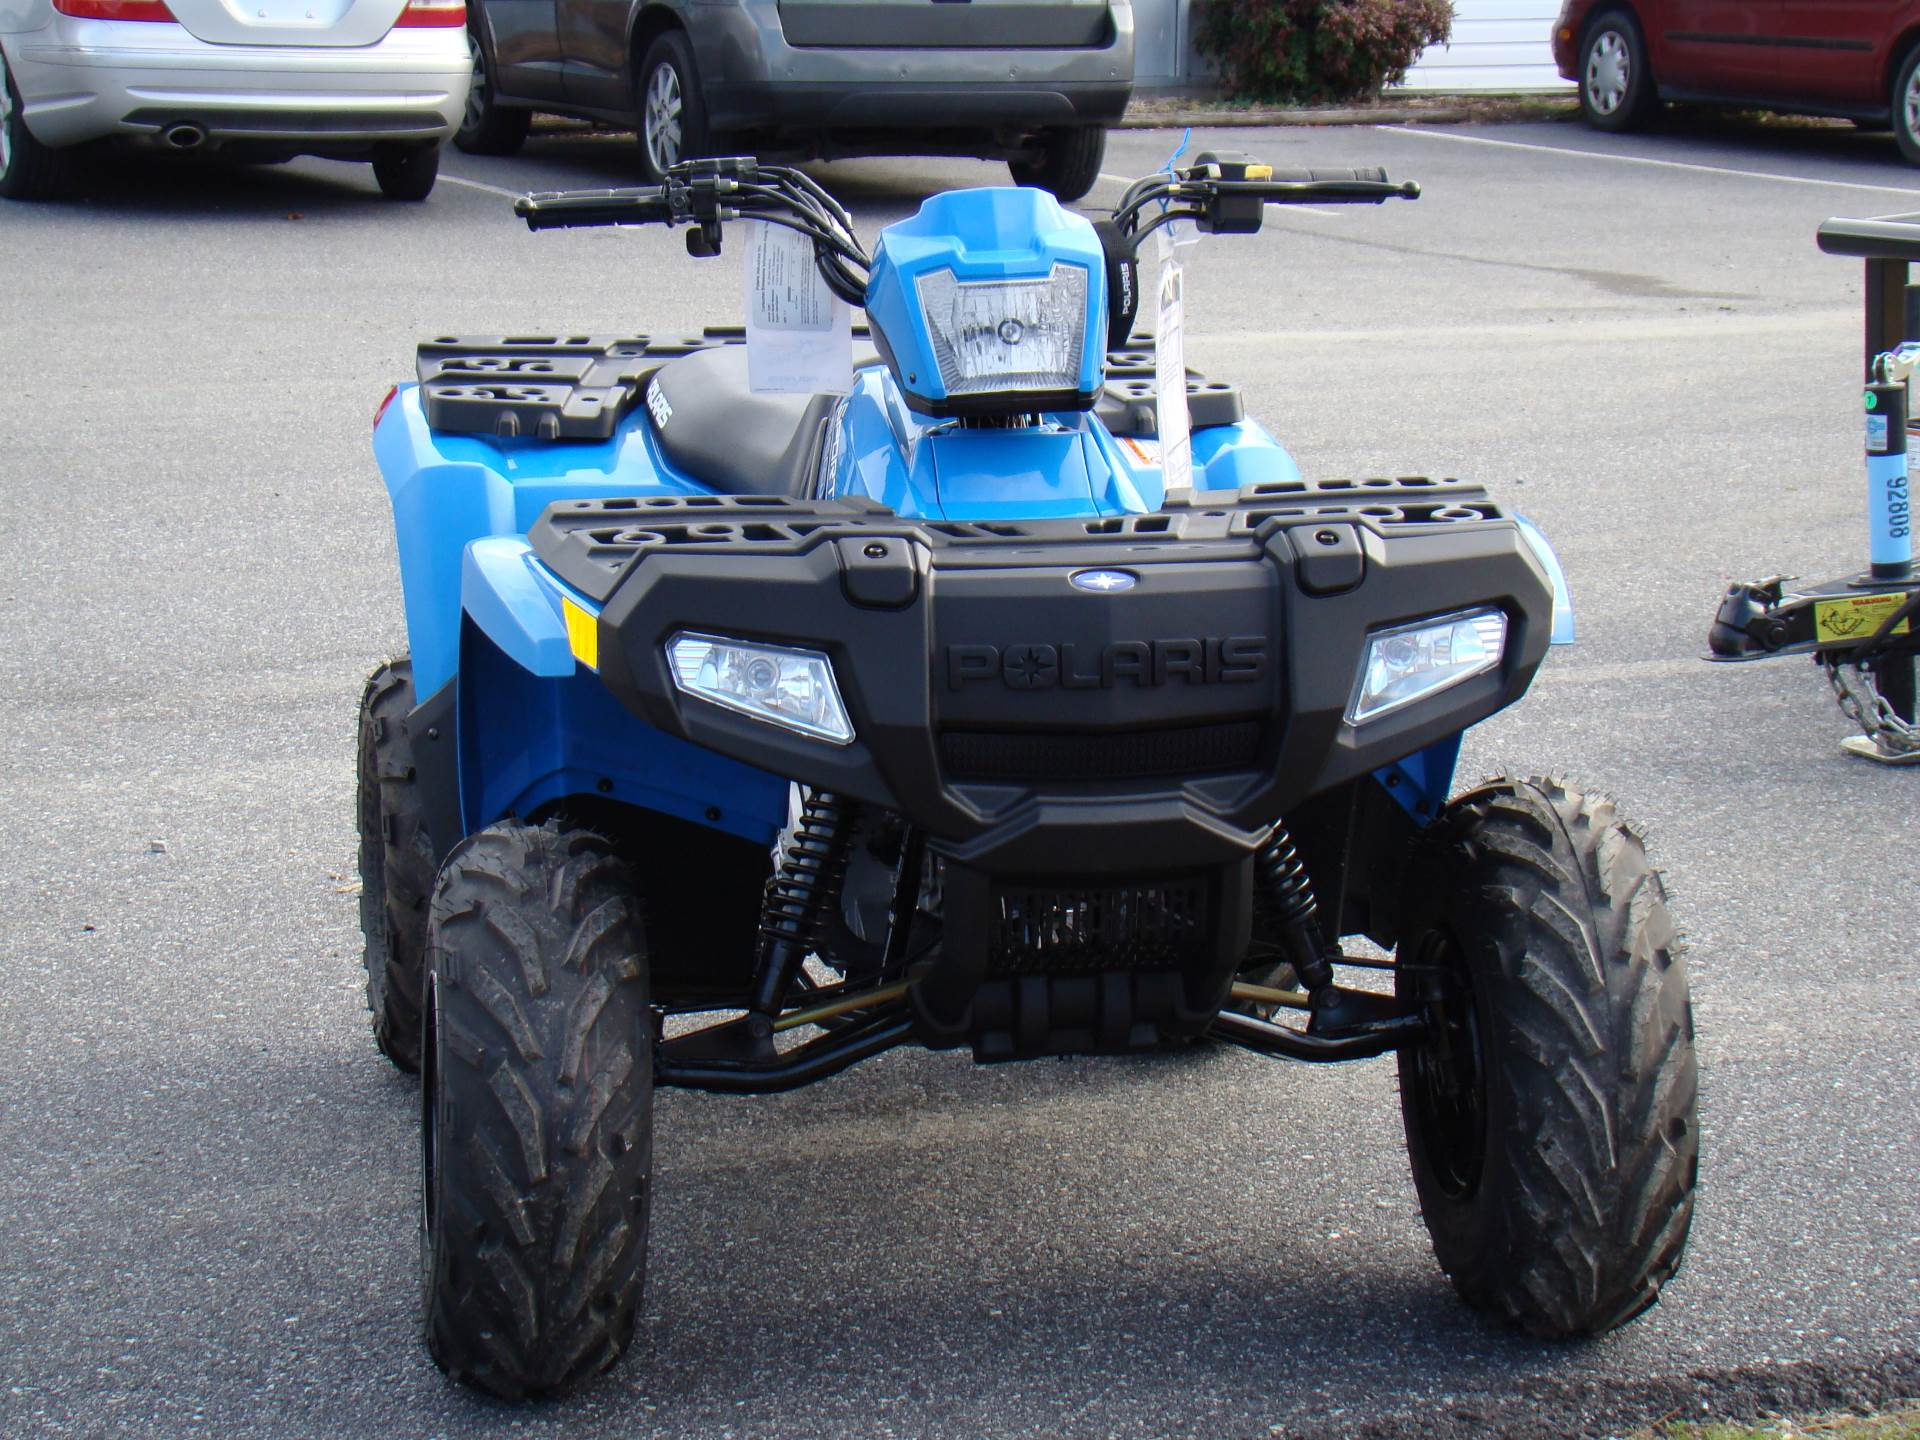 2020 Polaris Sportsman 110 EFI in Hayes, Virginia - Photo 6